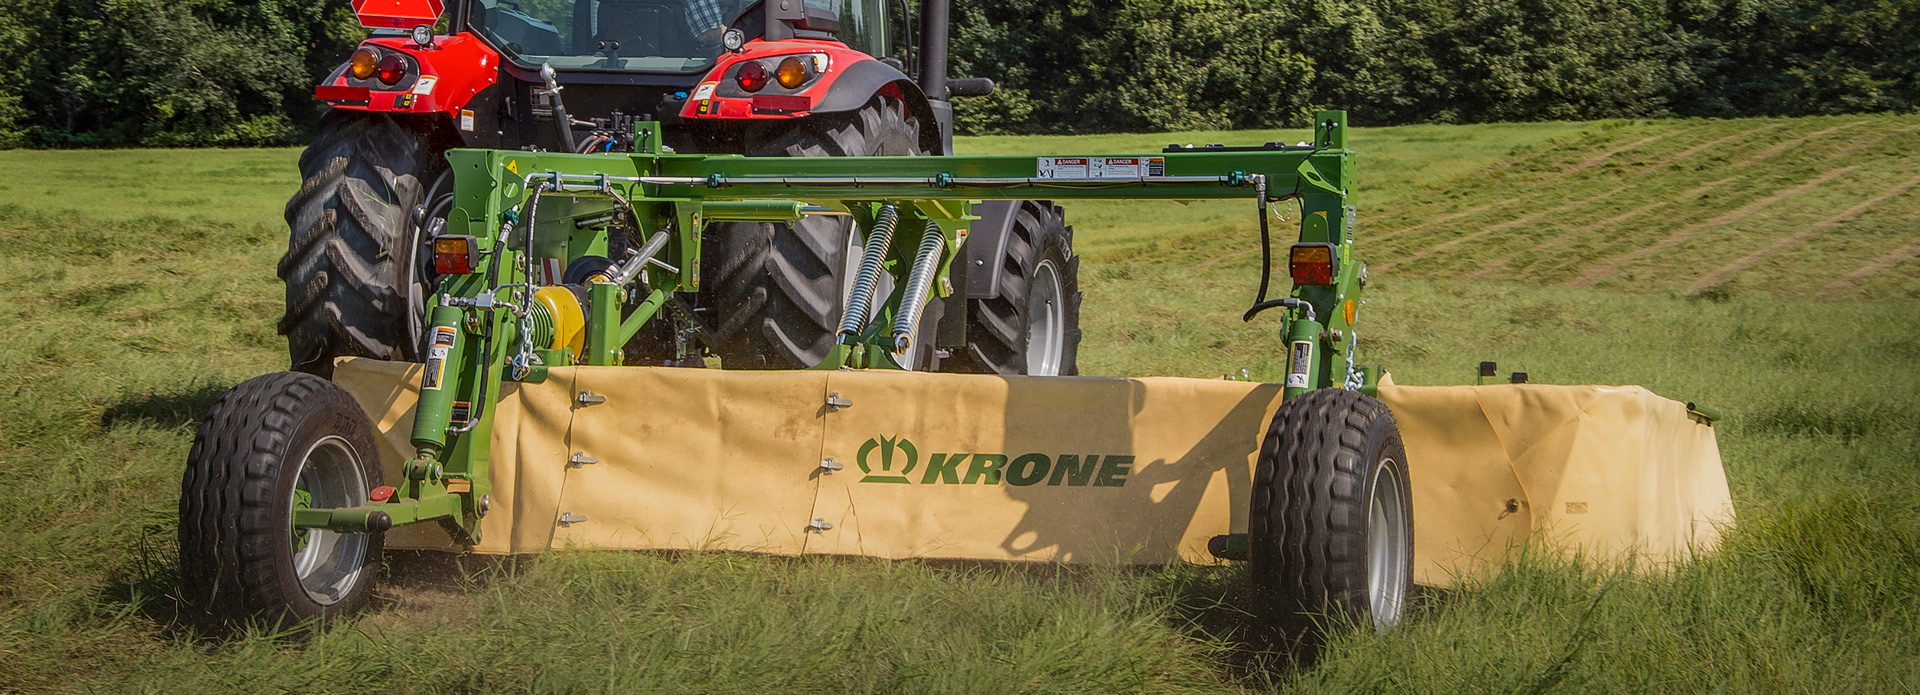 Eldon-C-Stutsman-Inc-Krone-Hay-Equipment-Easy-Cut-R